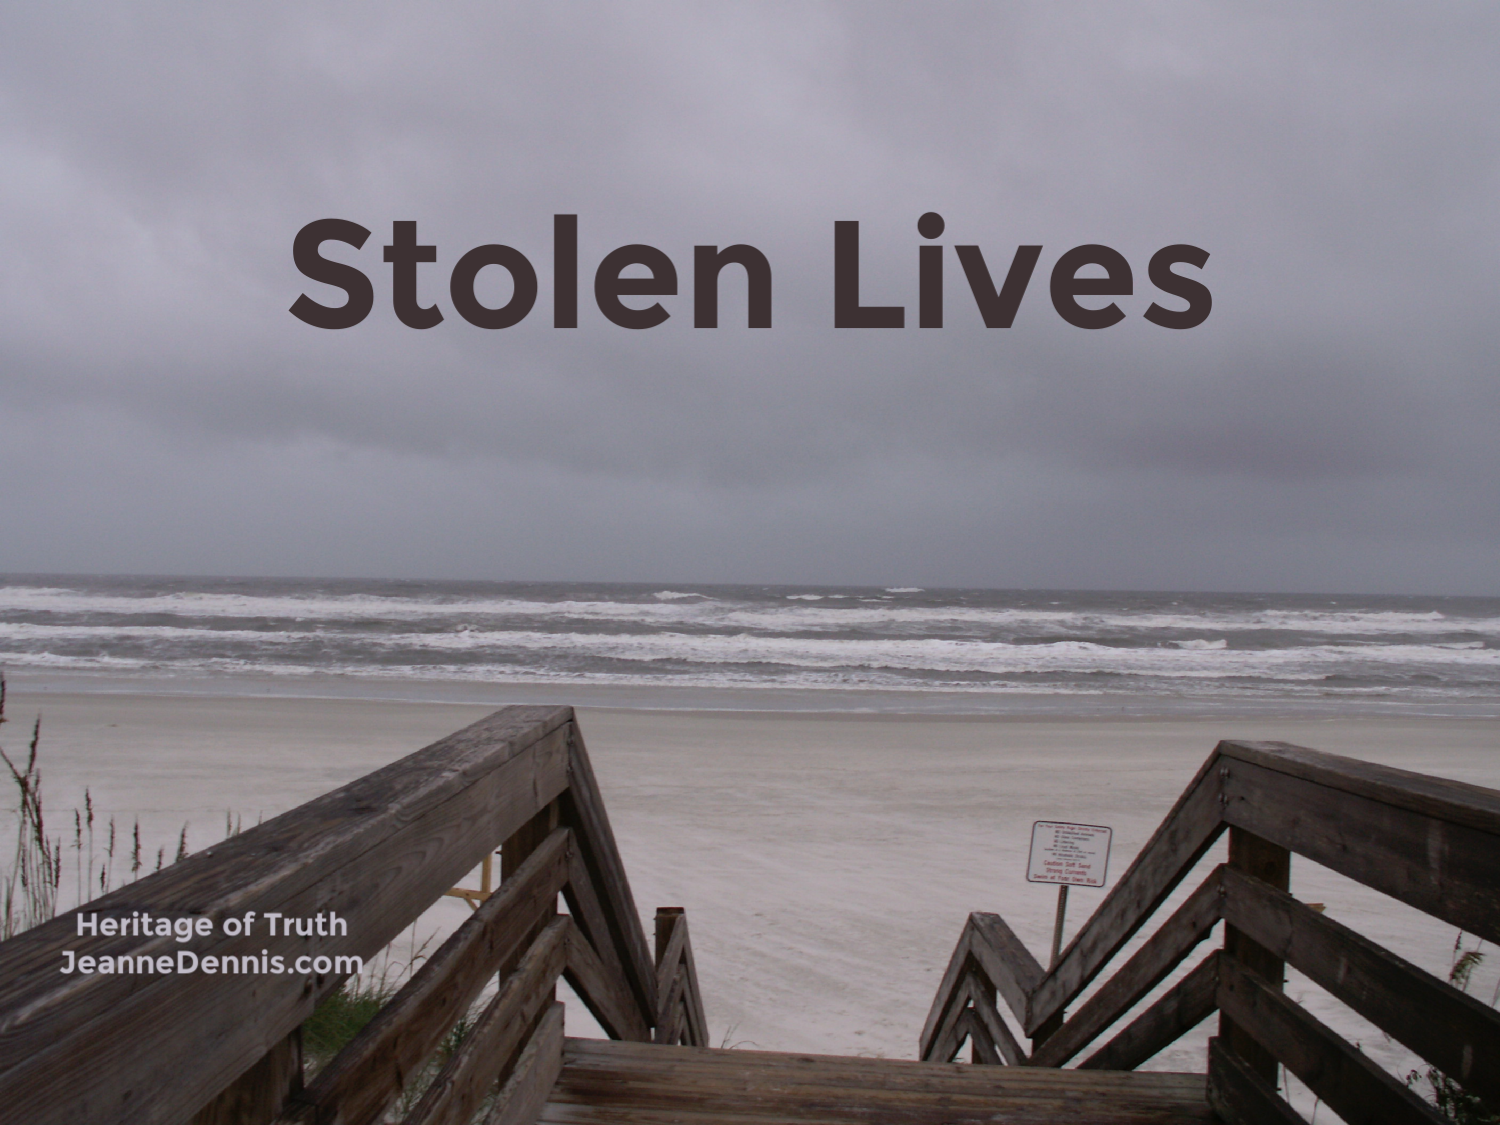 Stolen Lives, Heritage of Truth, JeanneDennis.com